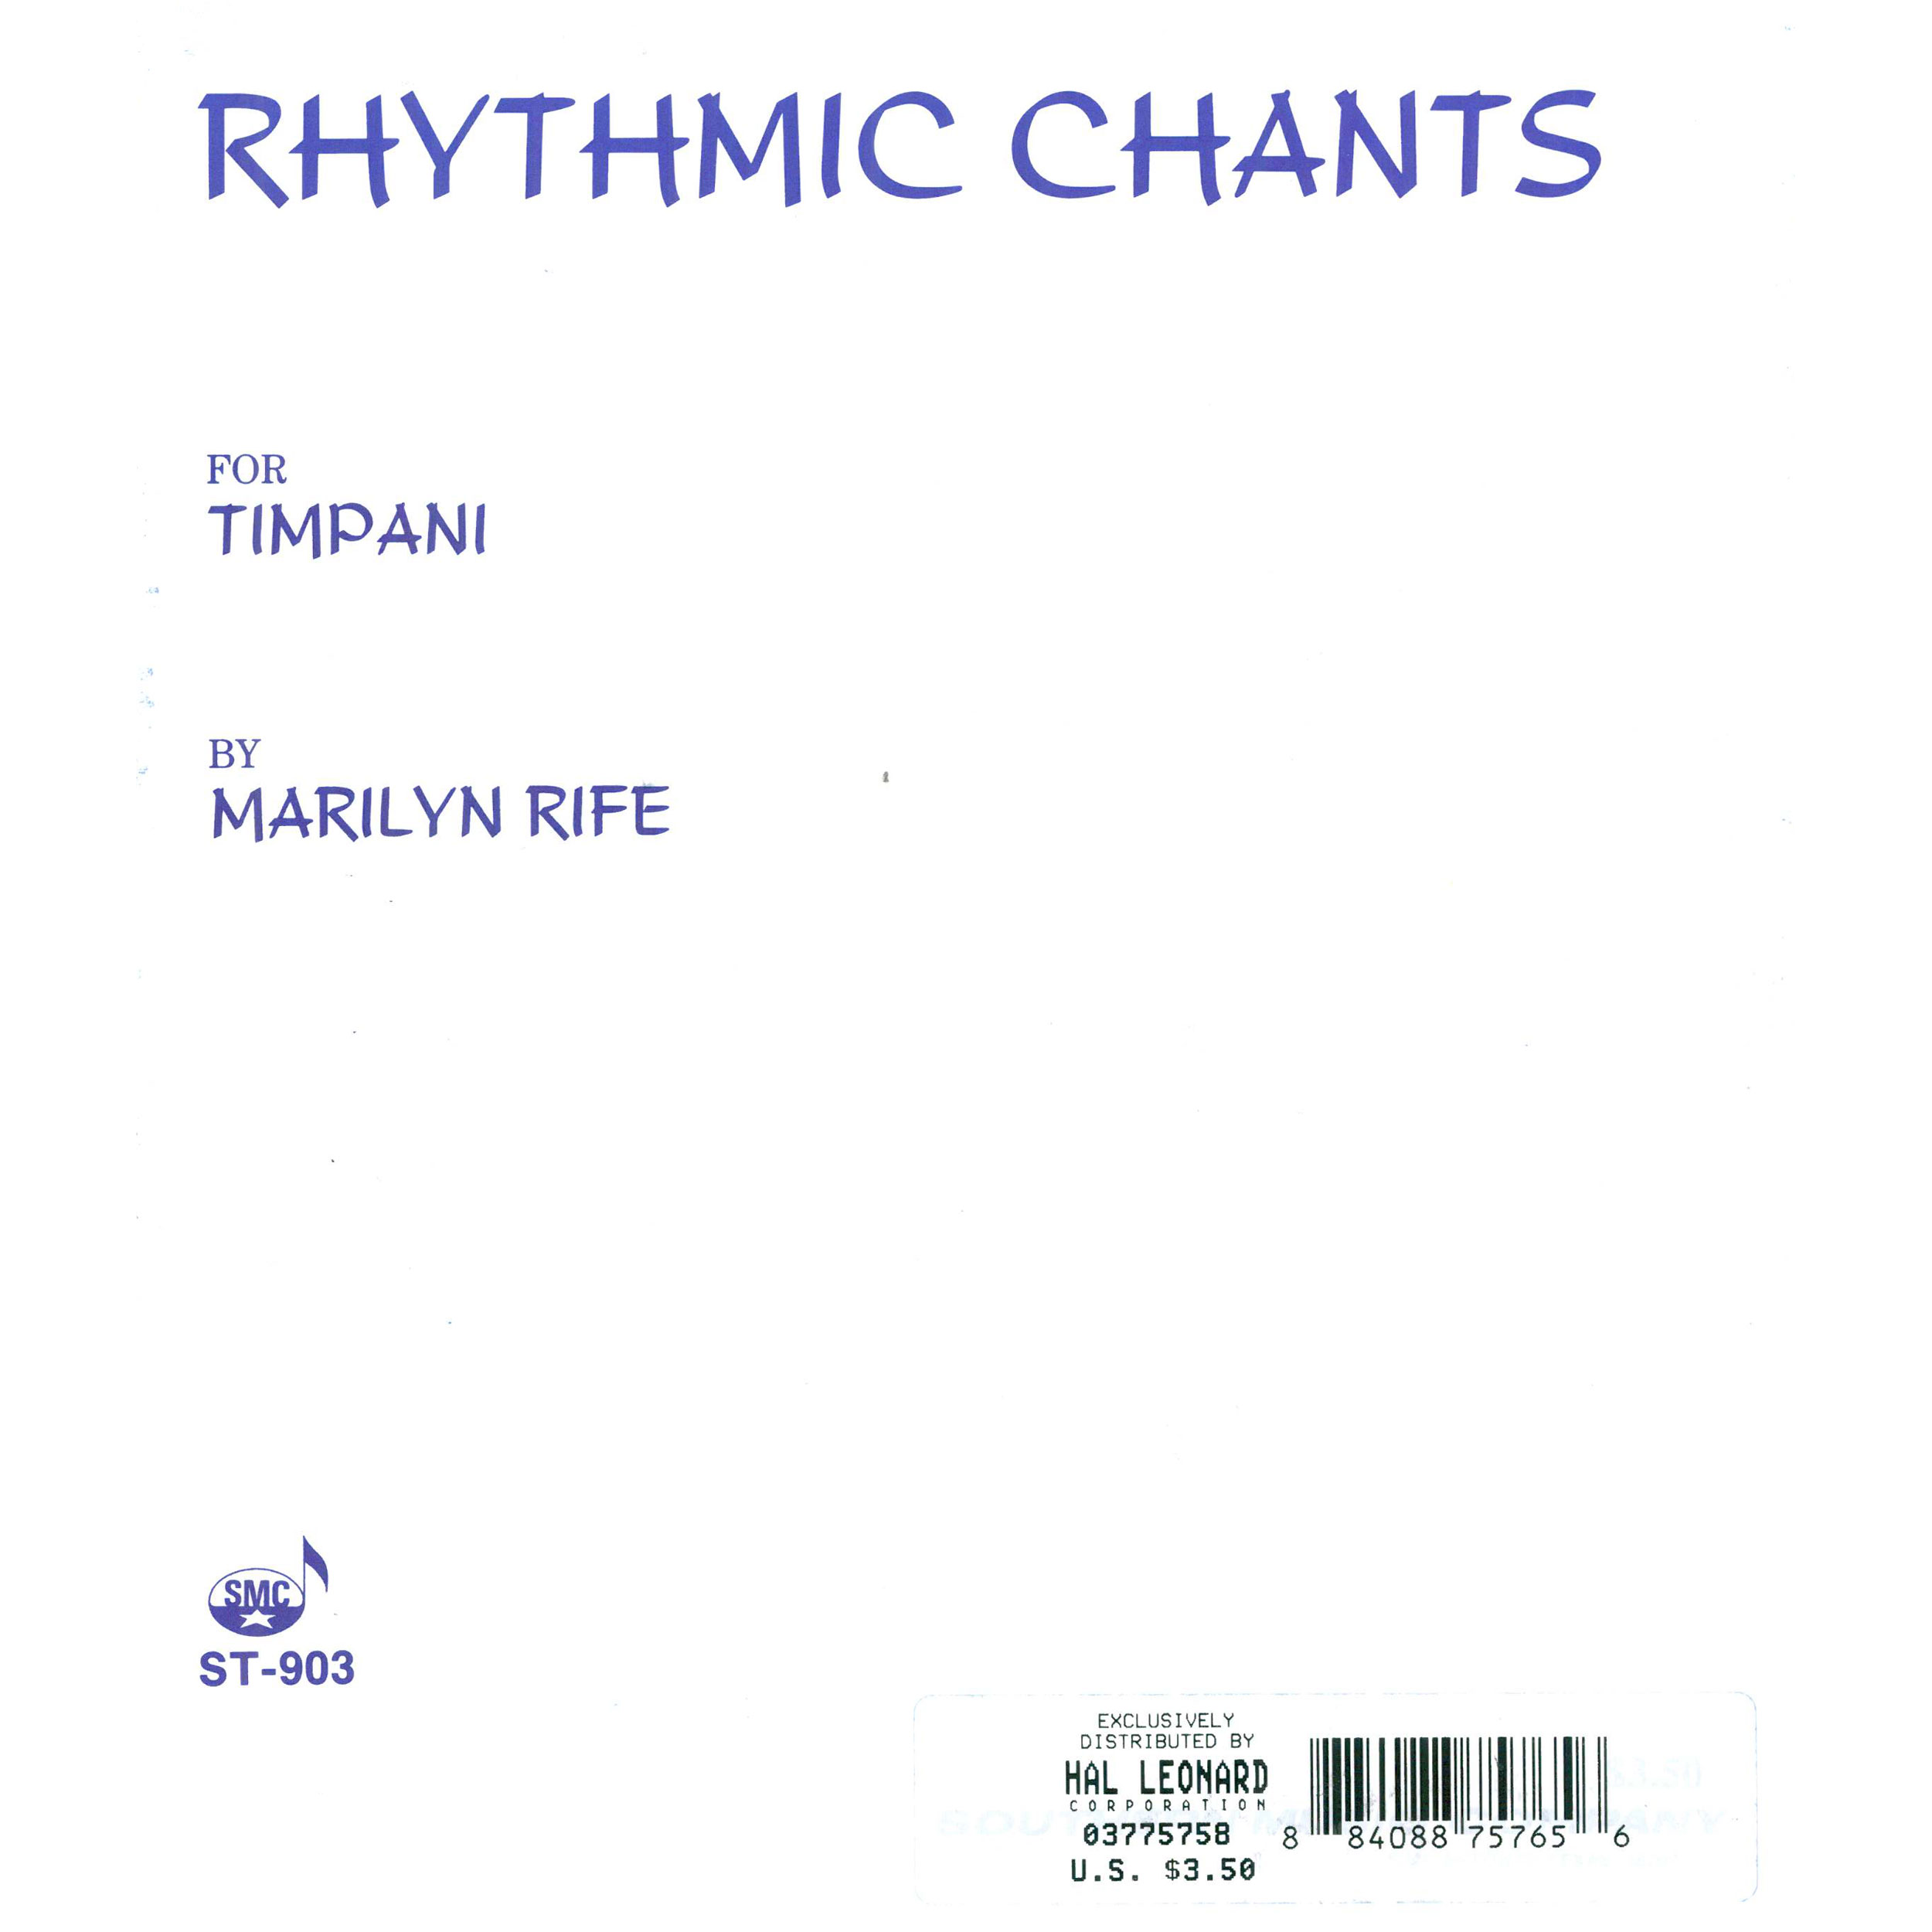 Rhythmic Chants for Timpani by Marilyn Rife